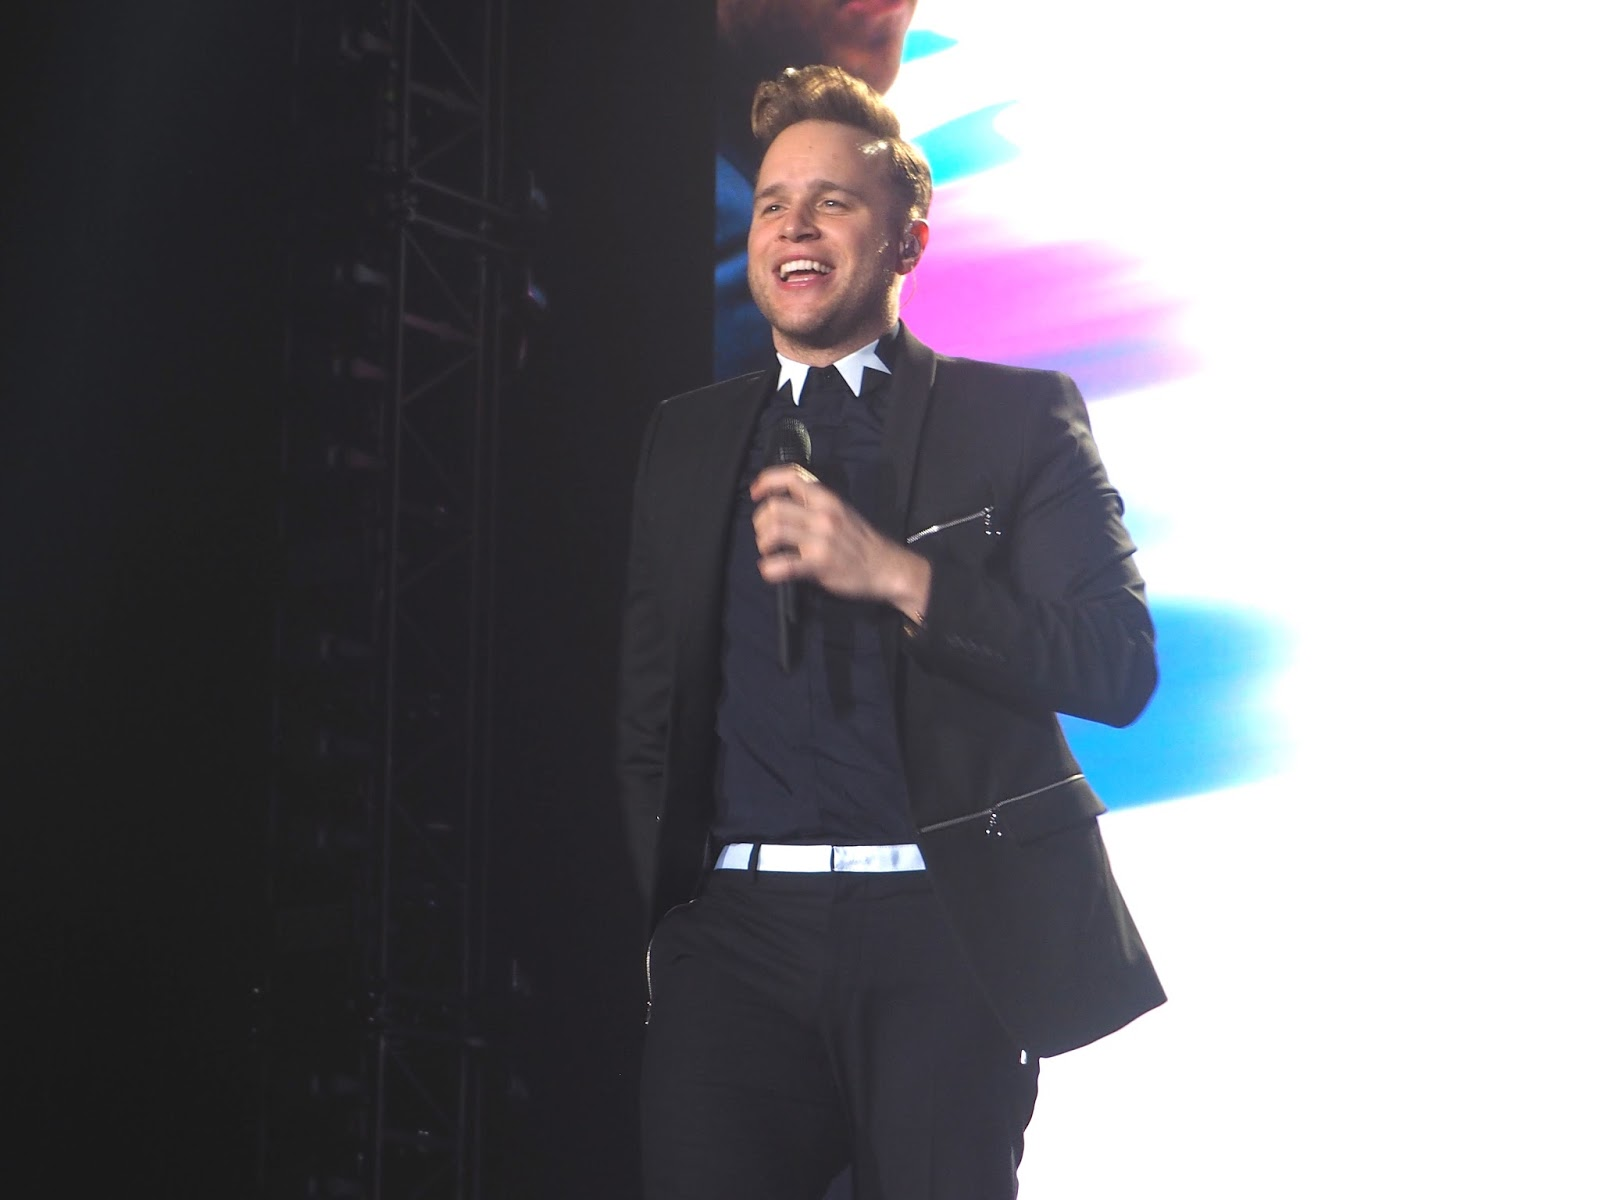 Olly Murs 24hrs Tour Newcastle Arena